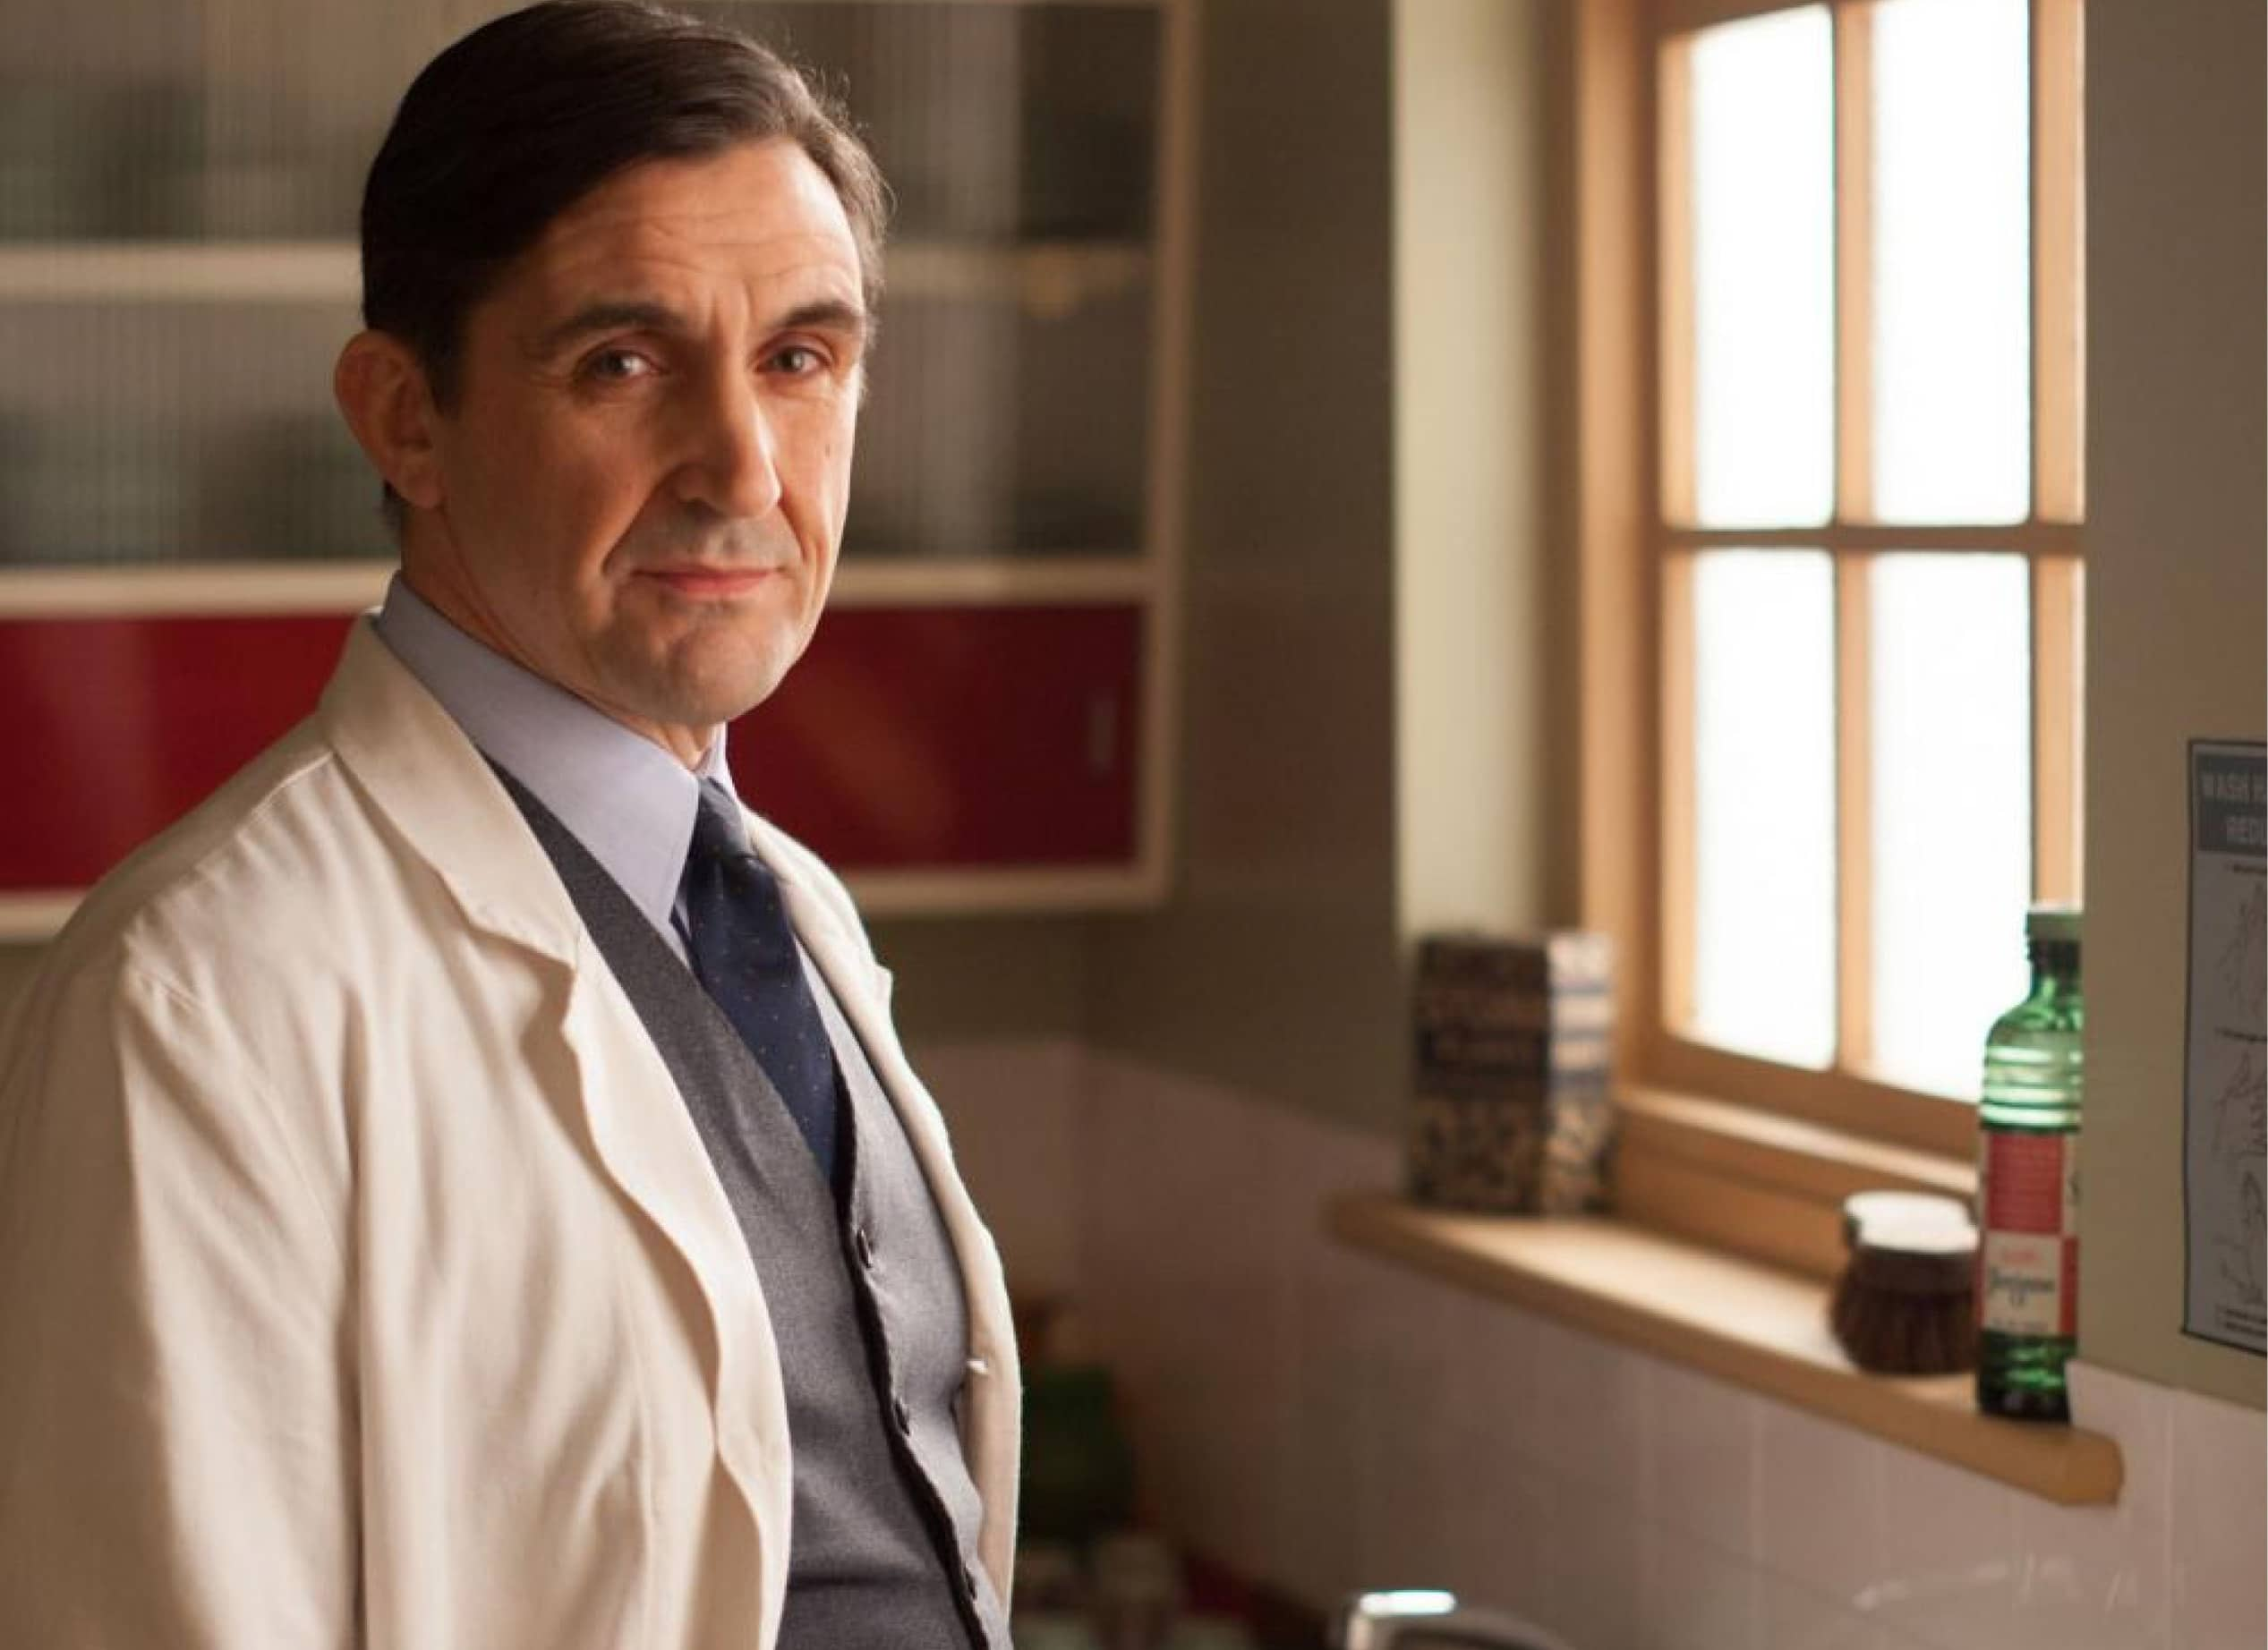 Call The Midwife fans fear the worst as star Stephen McGann hints at finale tragedy